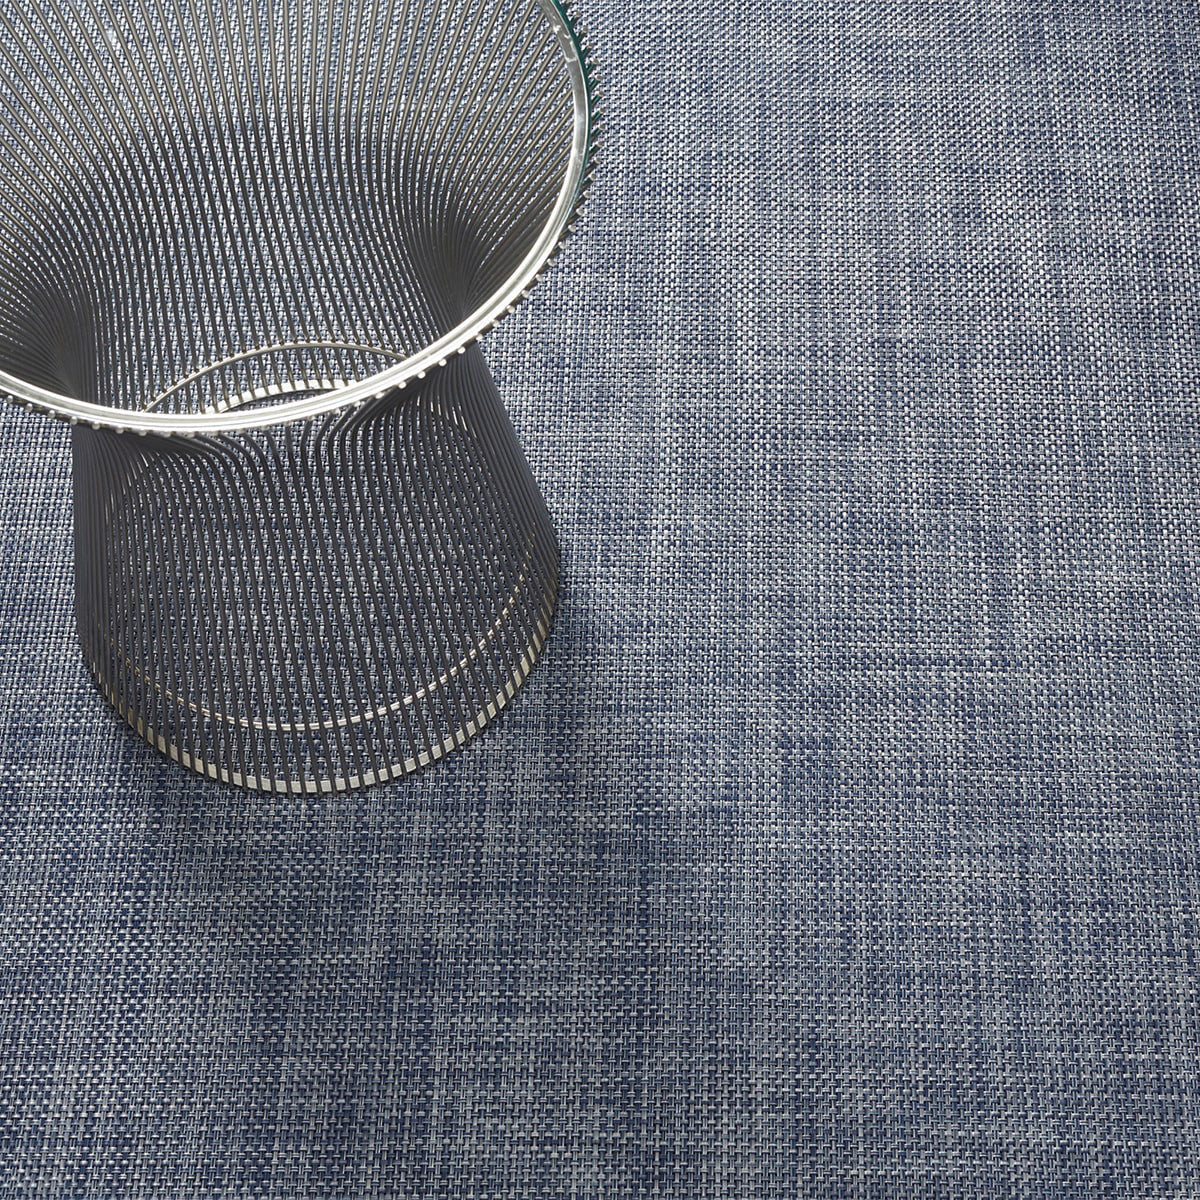 Basketweave Floor Mat in Denim